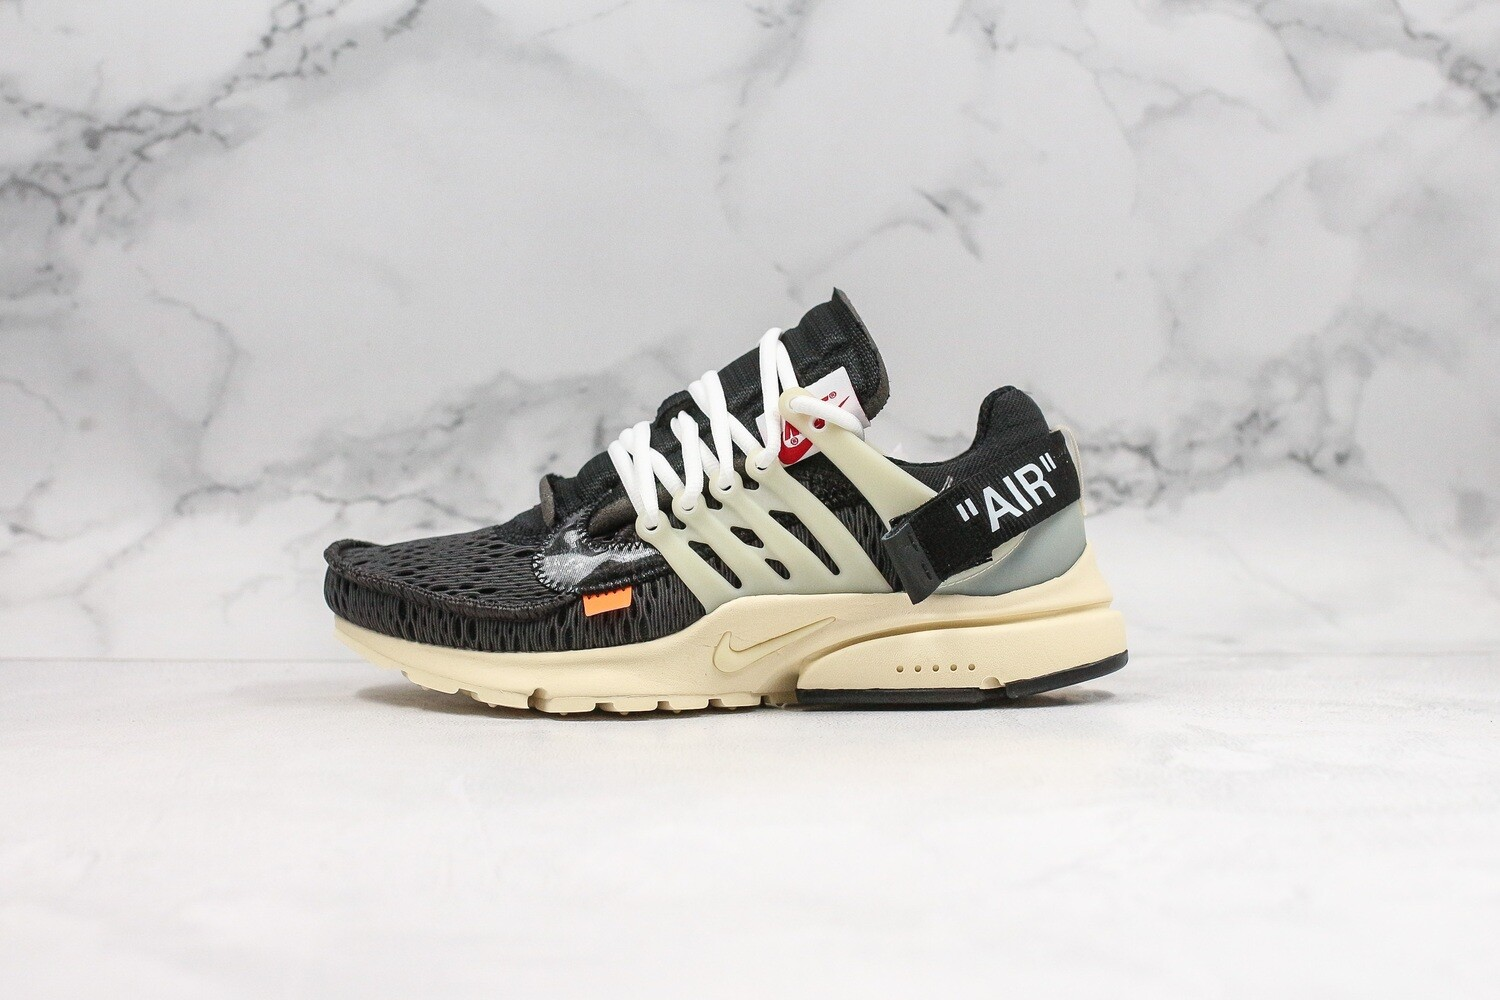 Men's/Women's Air Presto 2.0 x Off-White 'Black/Beige'  Basketball Shoes Casual Life sneakers